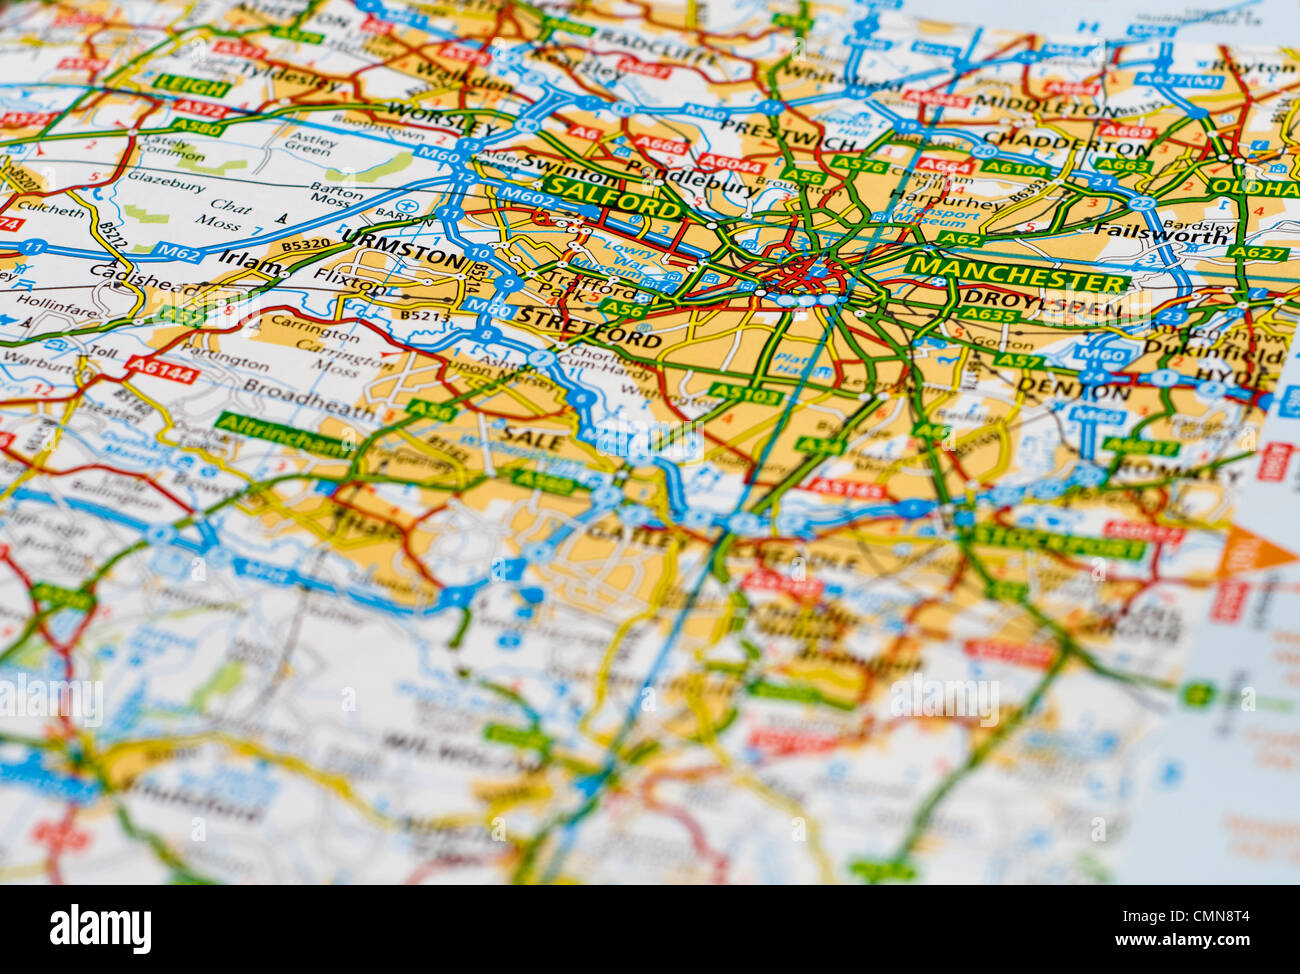 close up of a map of england focused on manchester stock image